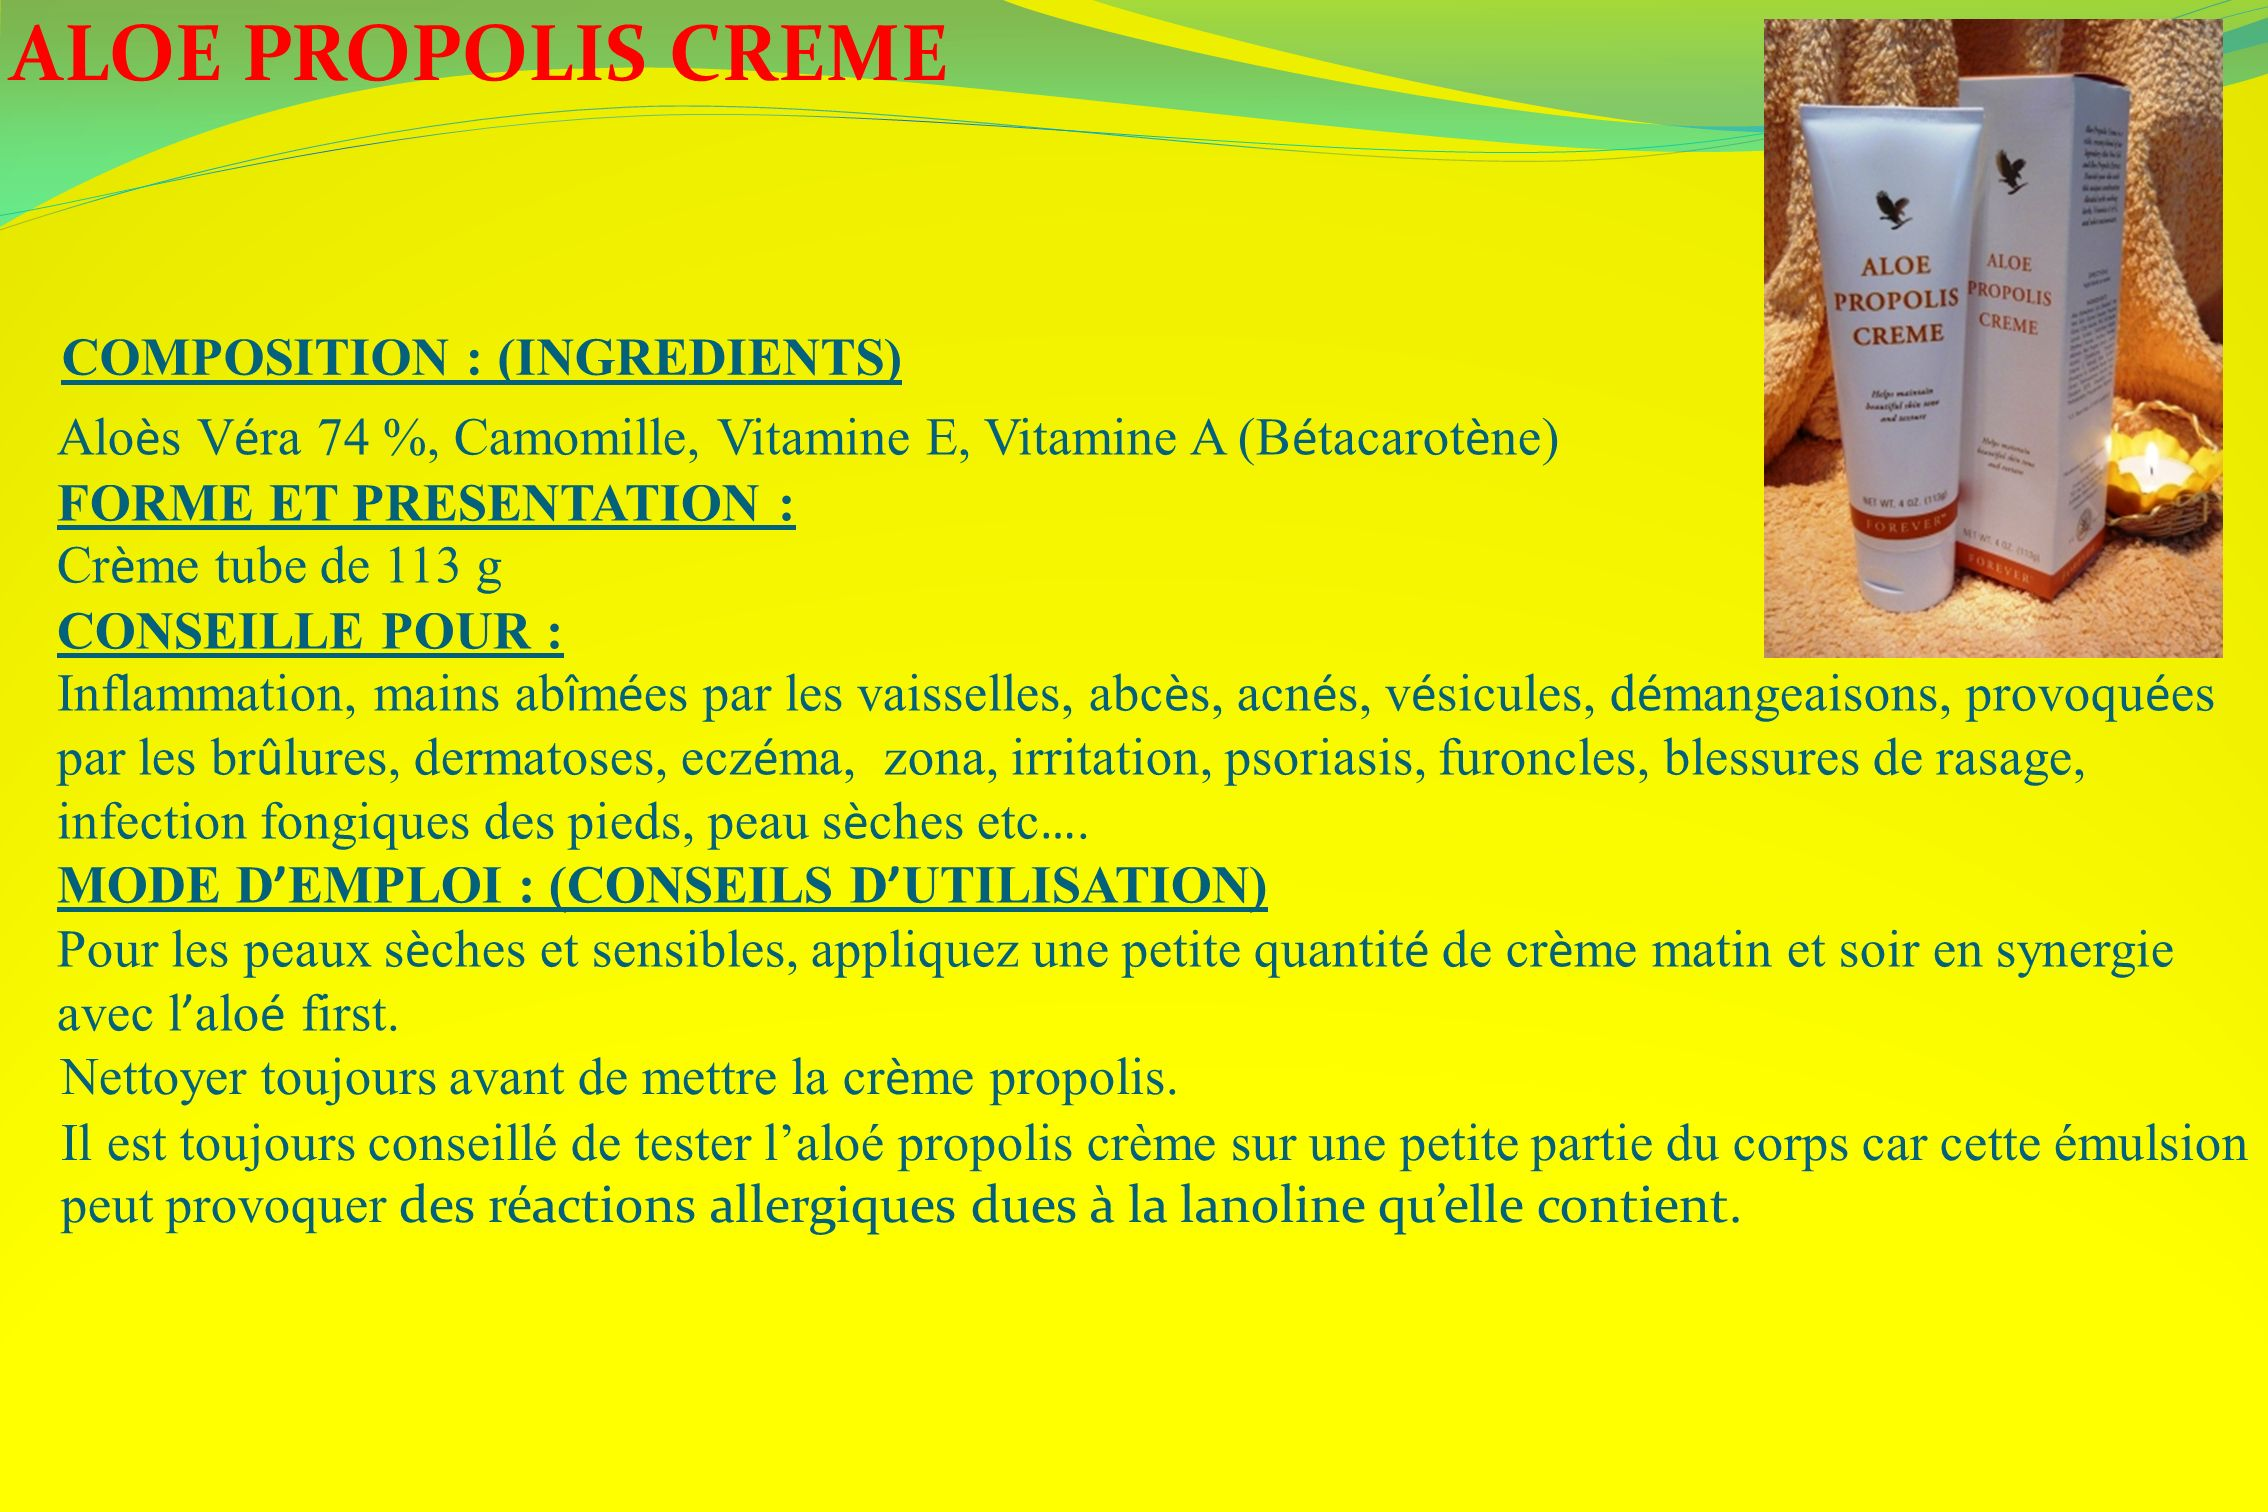 ALOE PROPOLIS CREME COMPOSITION : (INGREDIENTS)